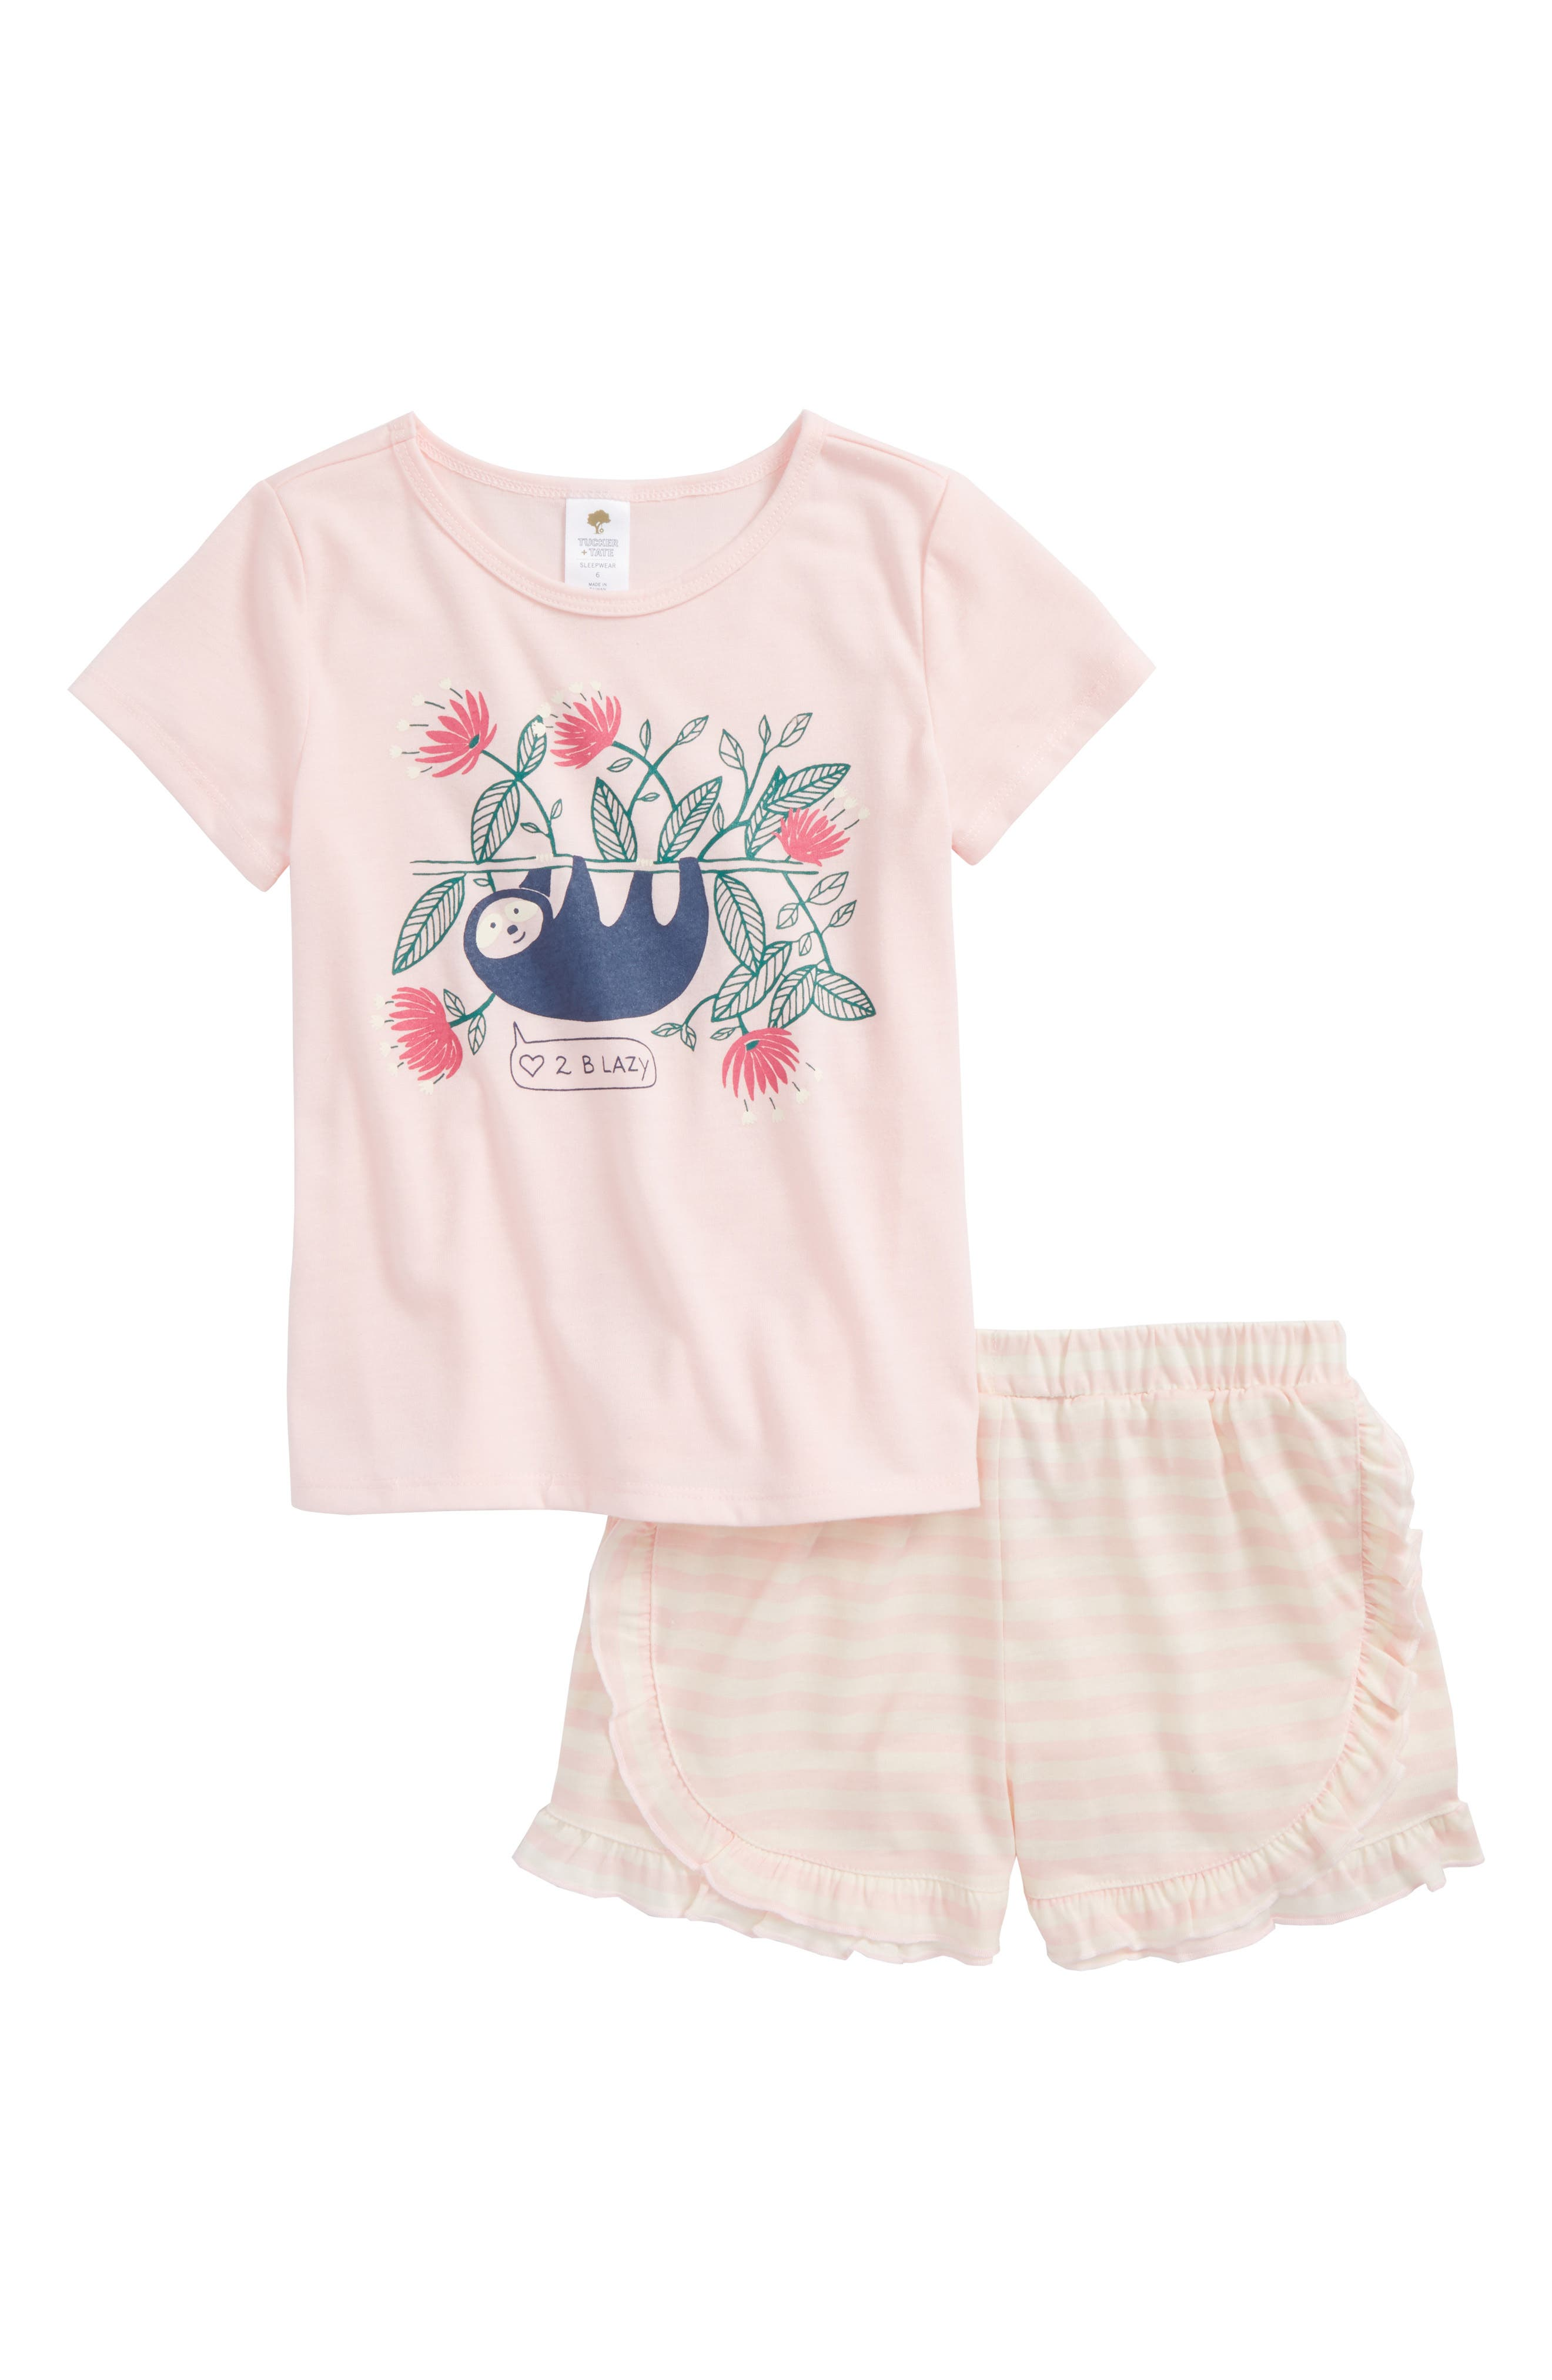 Two-Piece Pajamas,                         Main,                         color, Pink Baby Sloth